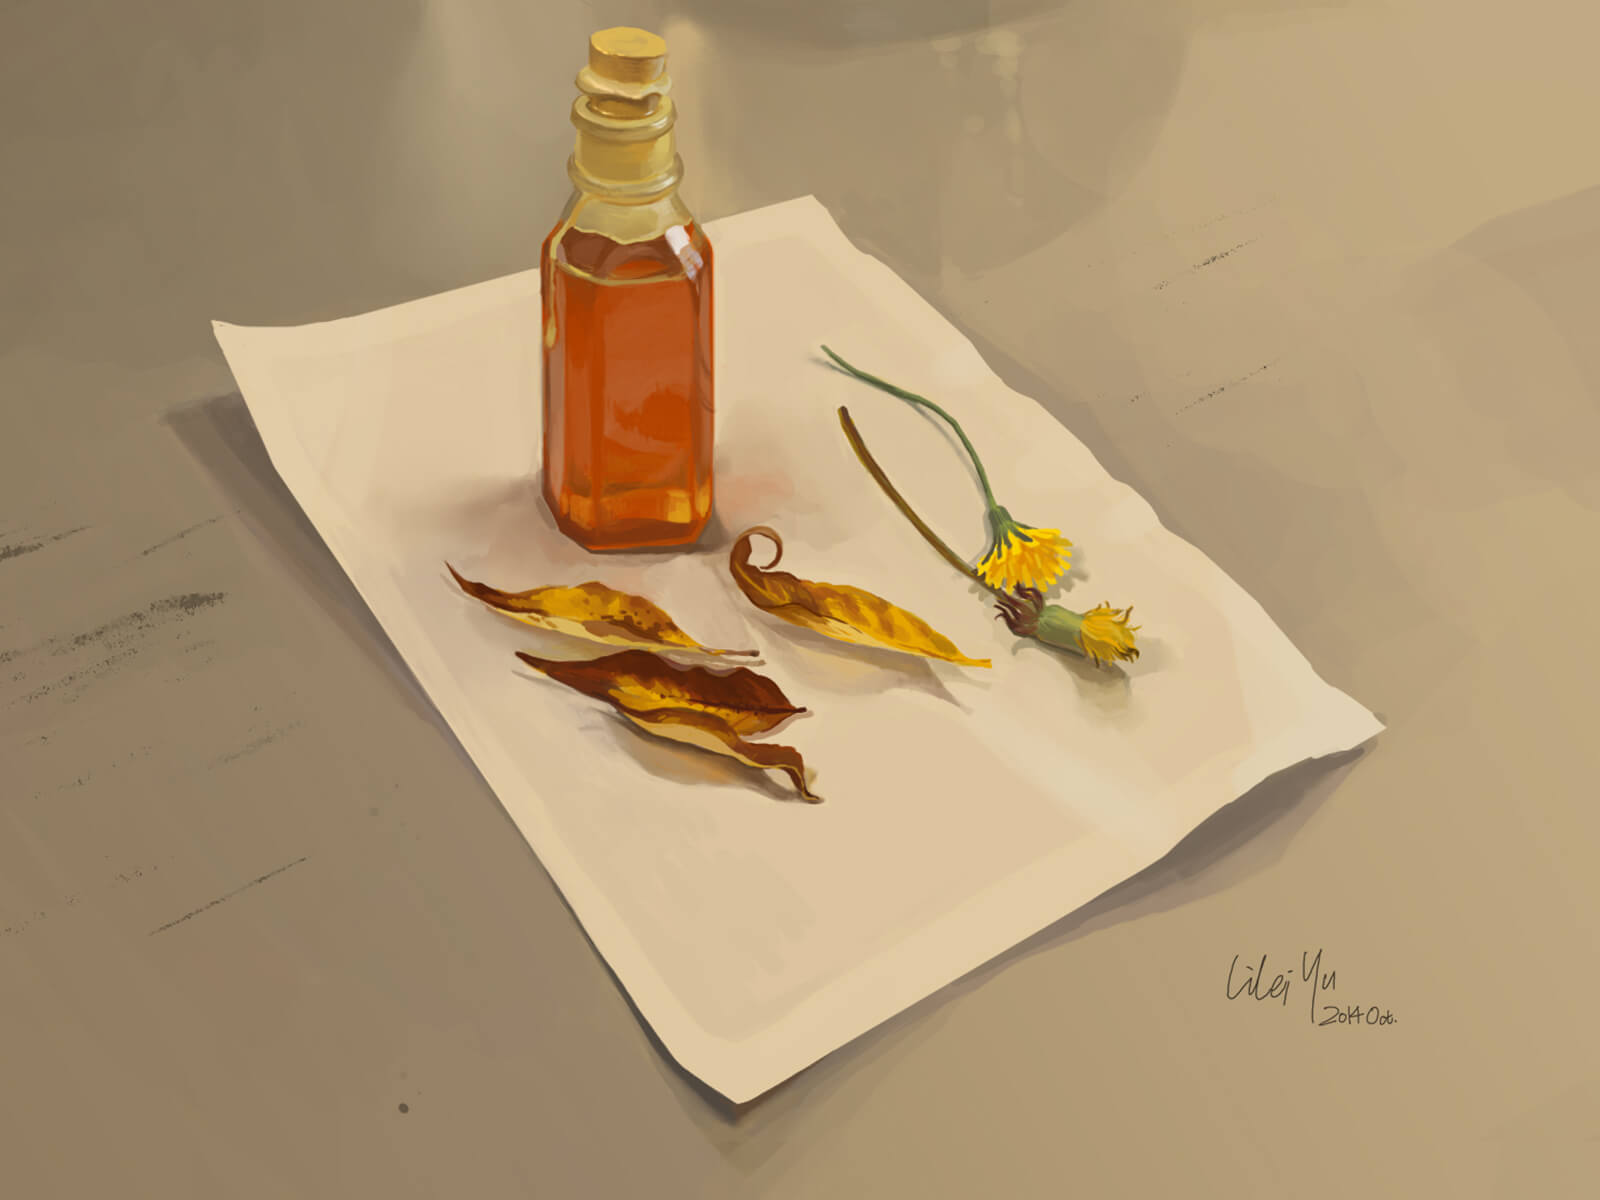 still-life traditional painting of a cork-stoppered bottle with dandelions and leaves on a white piece of paper